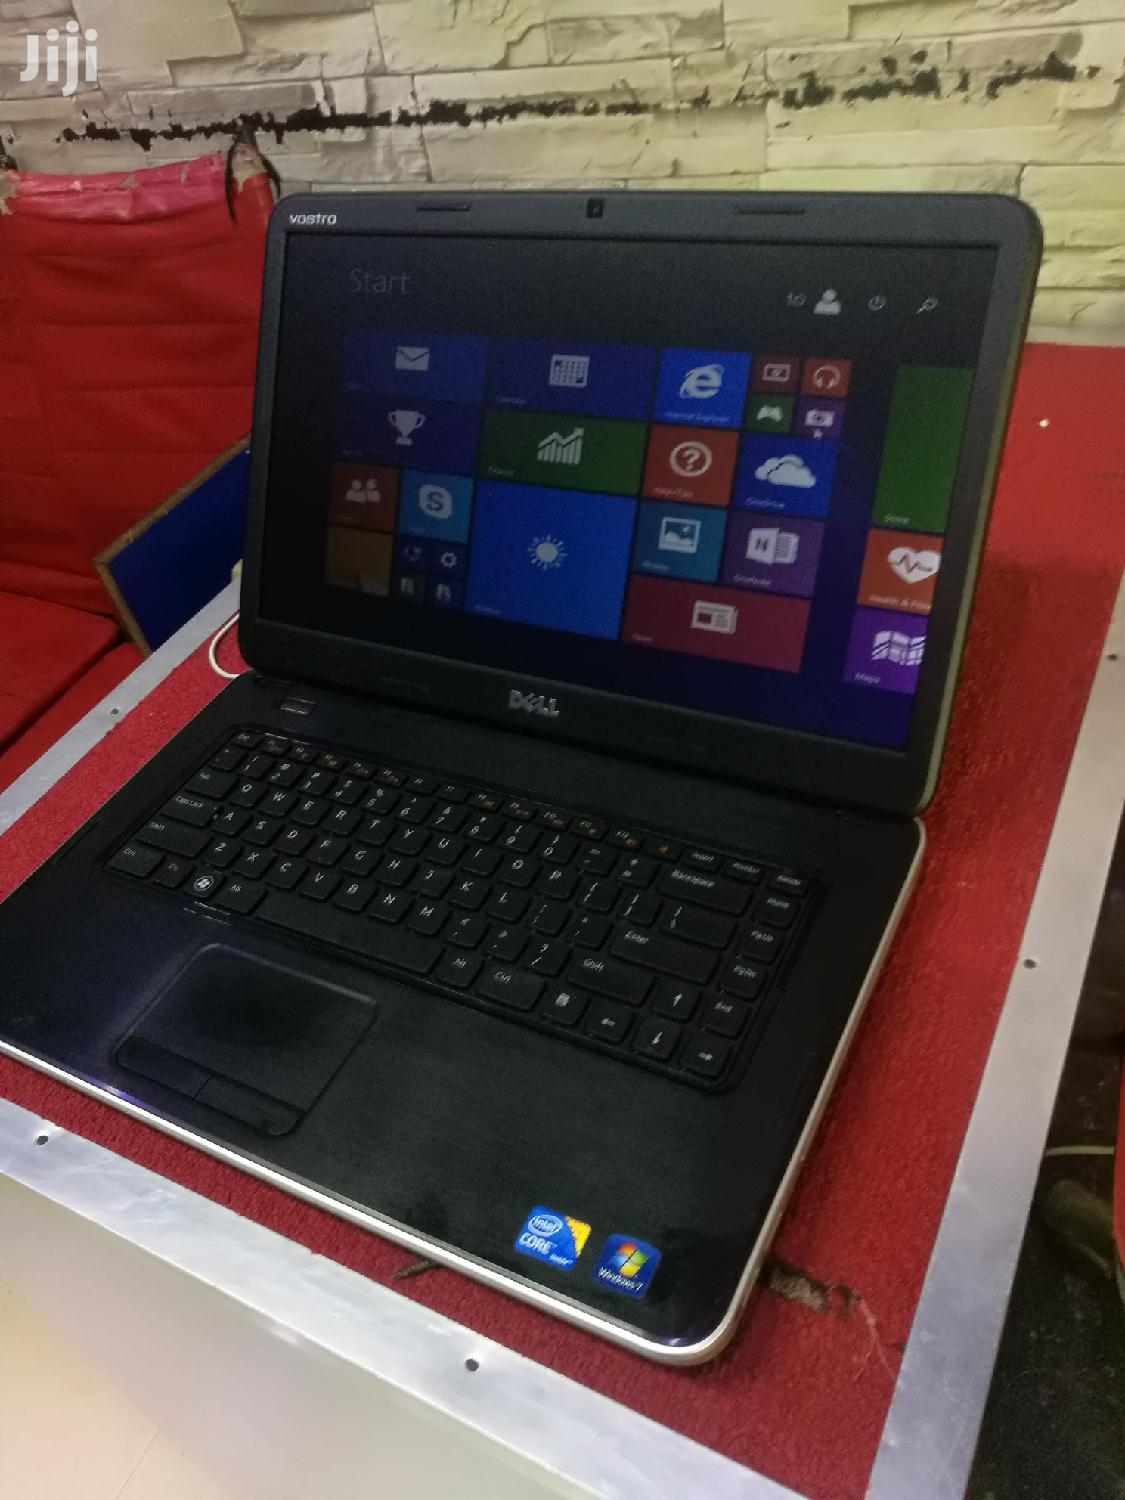 Laptop Dell Vostro 1540 4GB Intel Core i3 HDD 320GB | Laptops & Computers for sale in Kampala, Central Region, Uganda